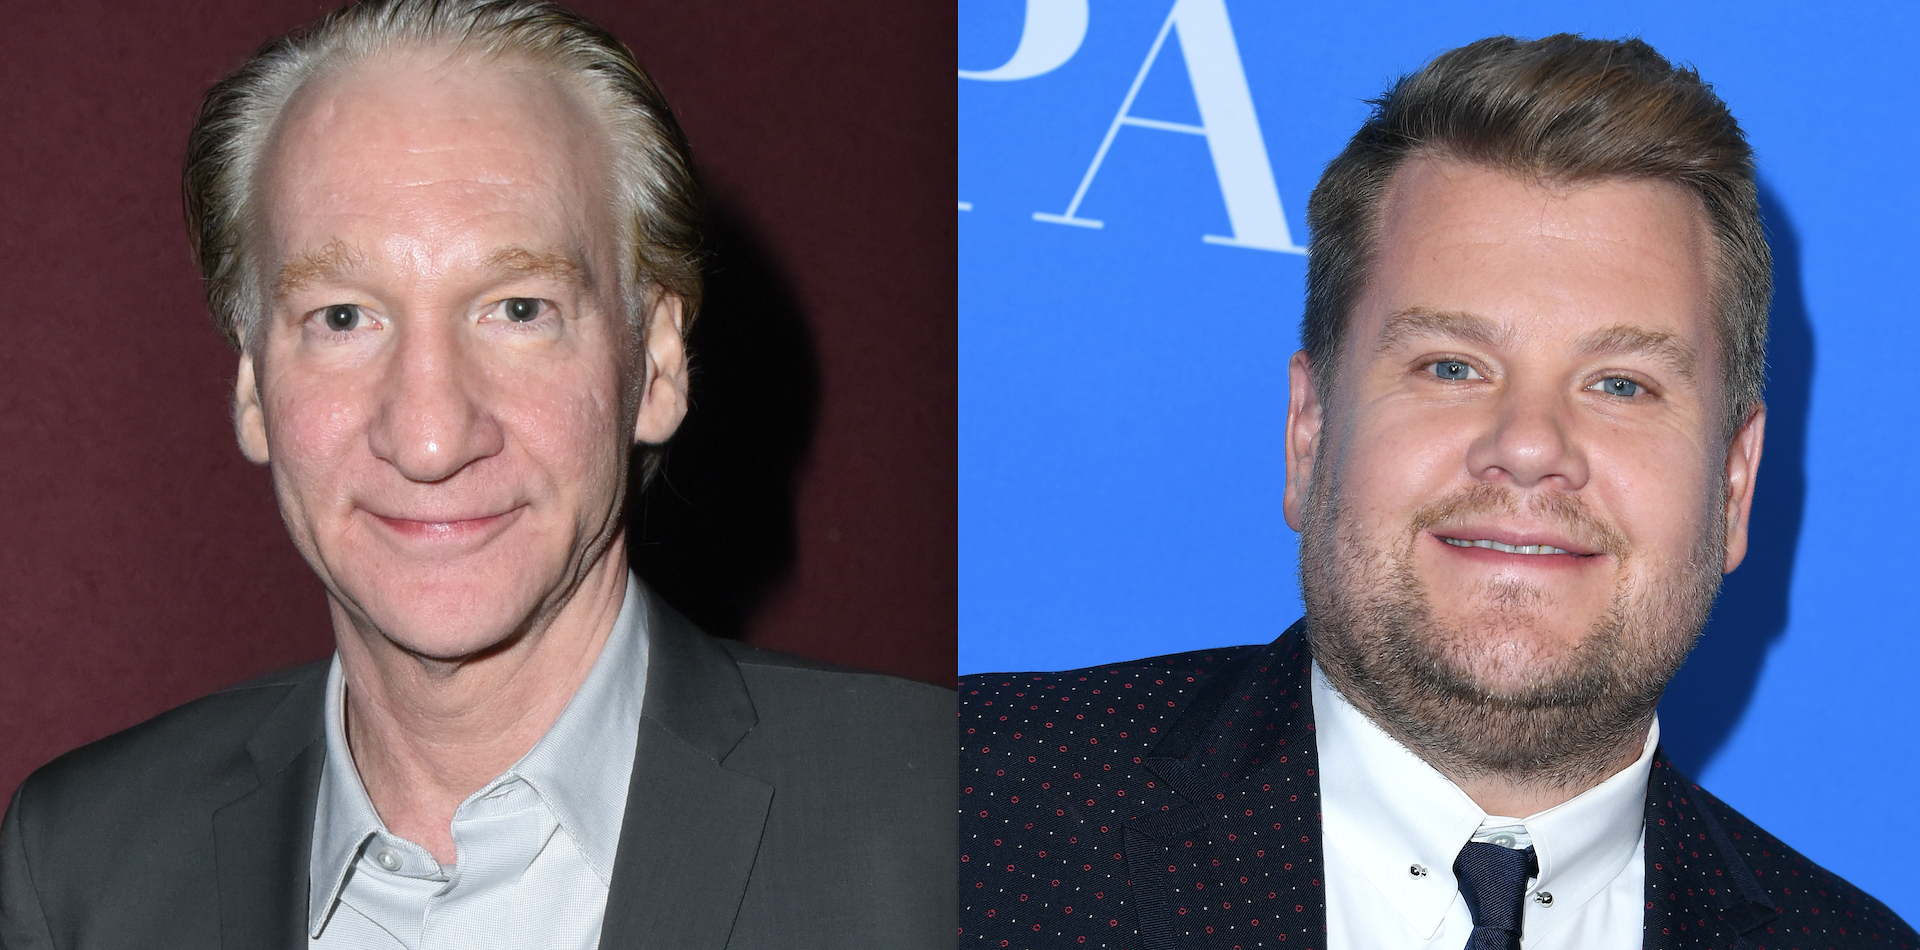 James Corden Called Out Bill Maher For Encouraging Fat Shaming